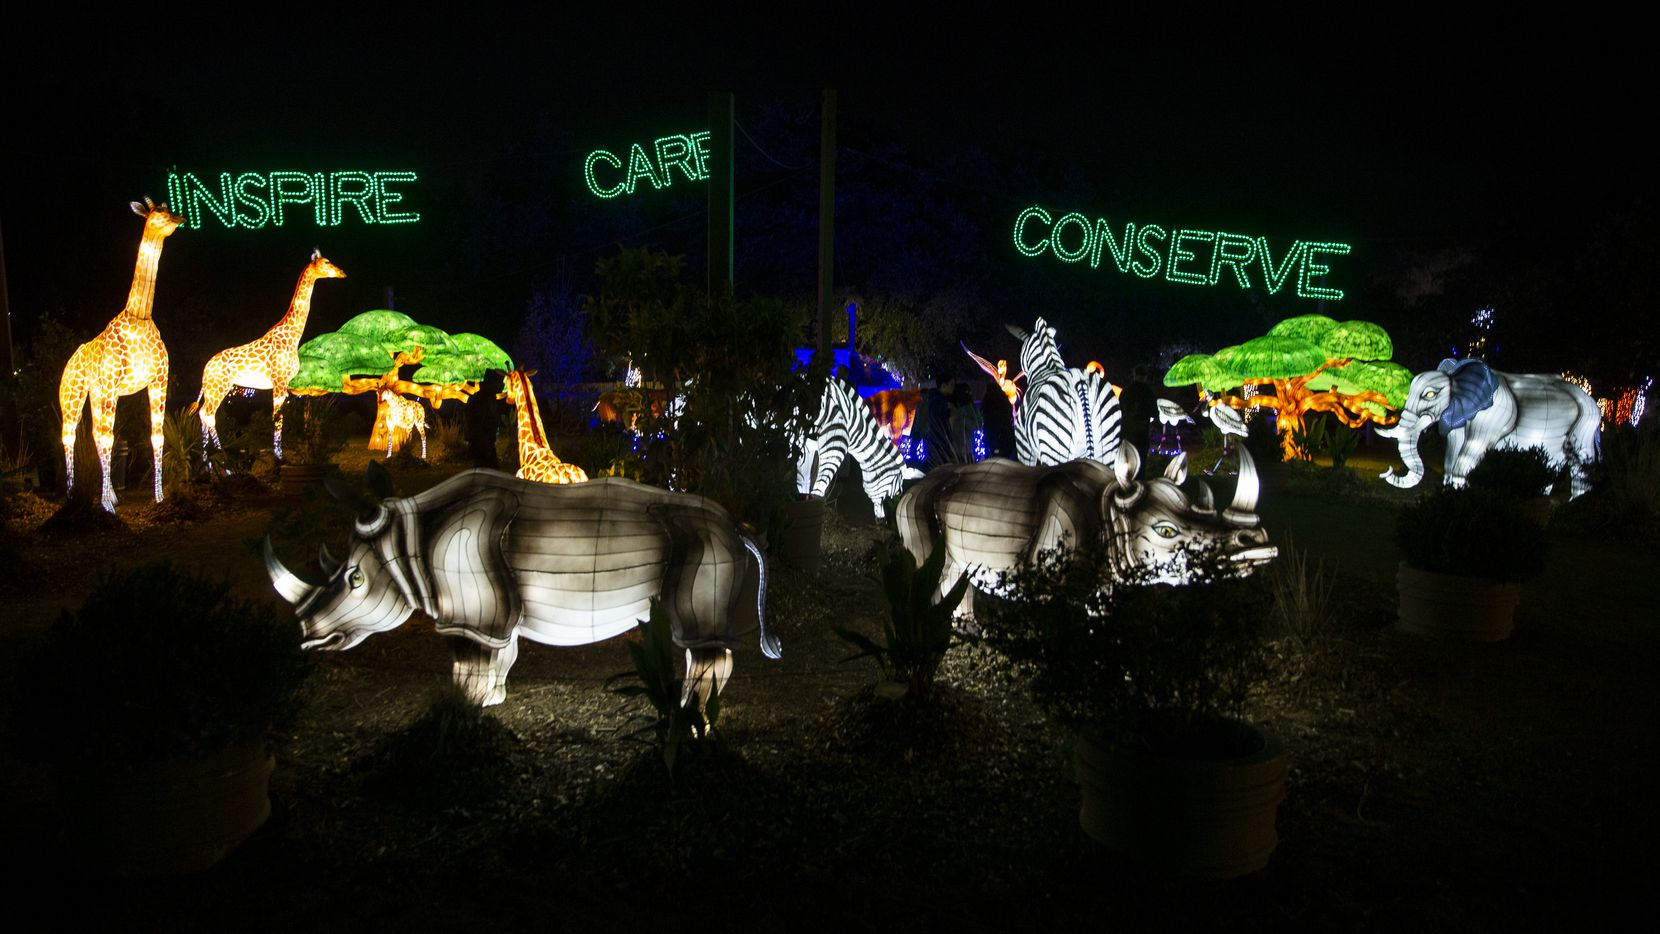 The Dallas ZooÕs replicated watering hole on Nov. 16, 2019 in Dallas. The zooÕs ZooNorth section features lighted displays and one million lights on select nights through Jan. 5.